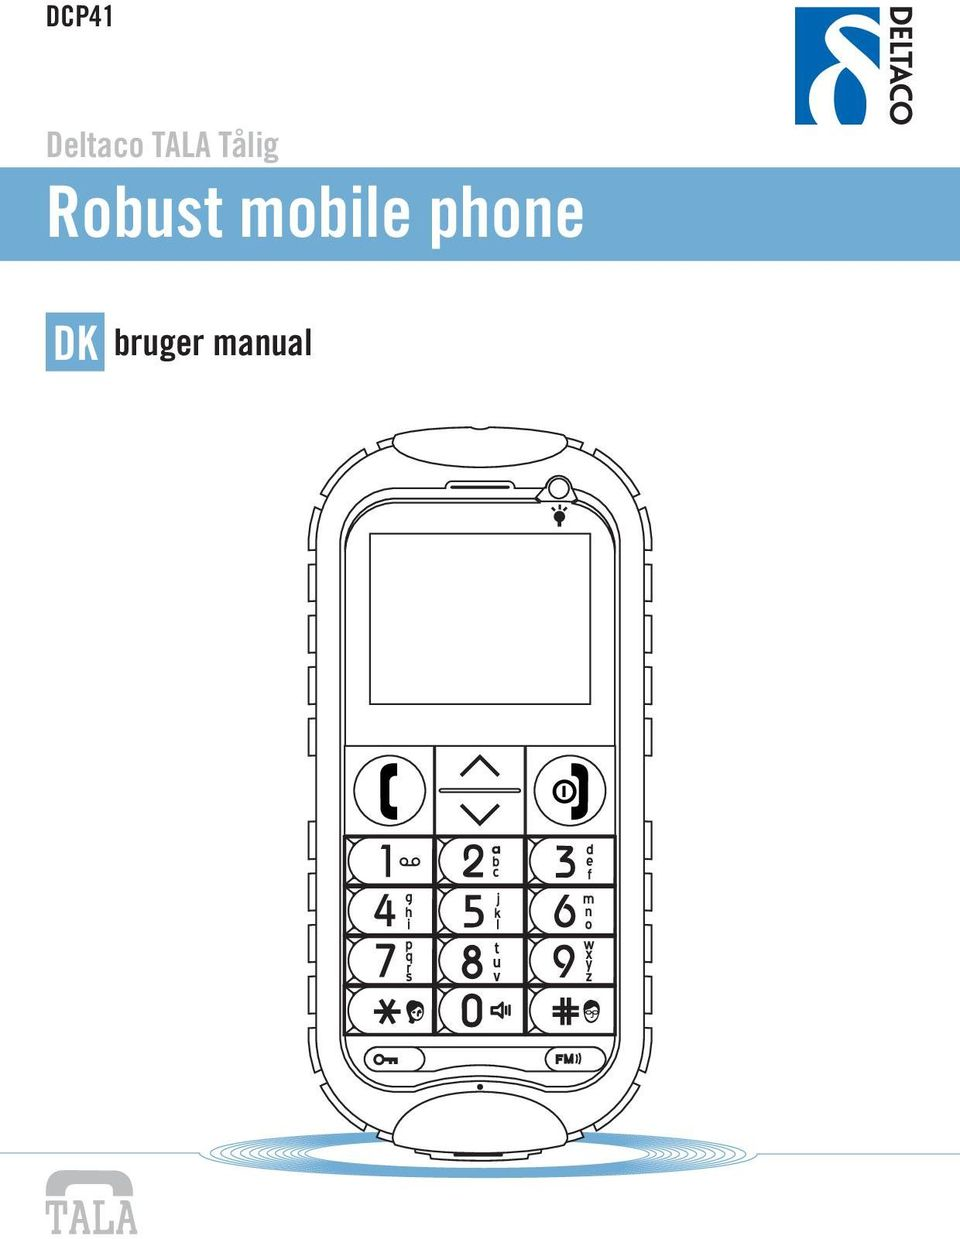 Robust mobile